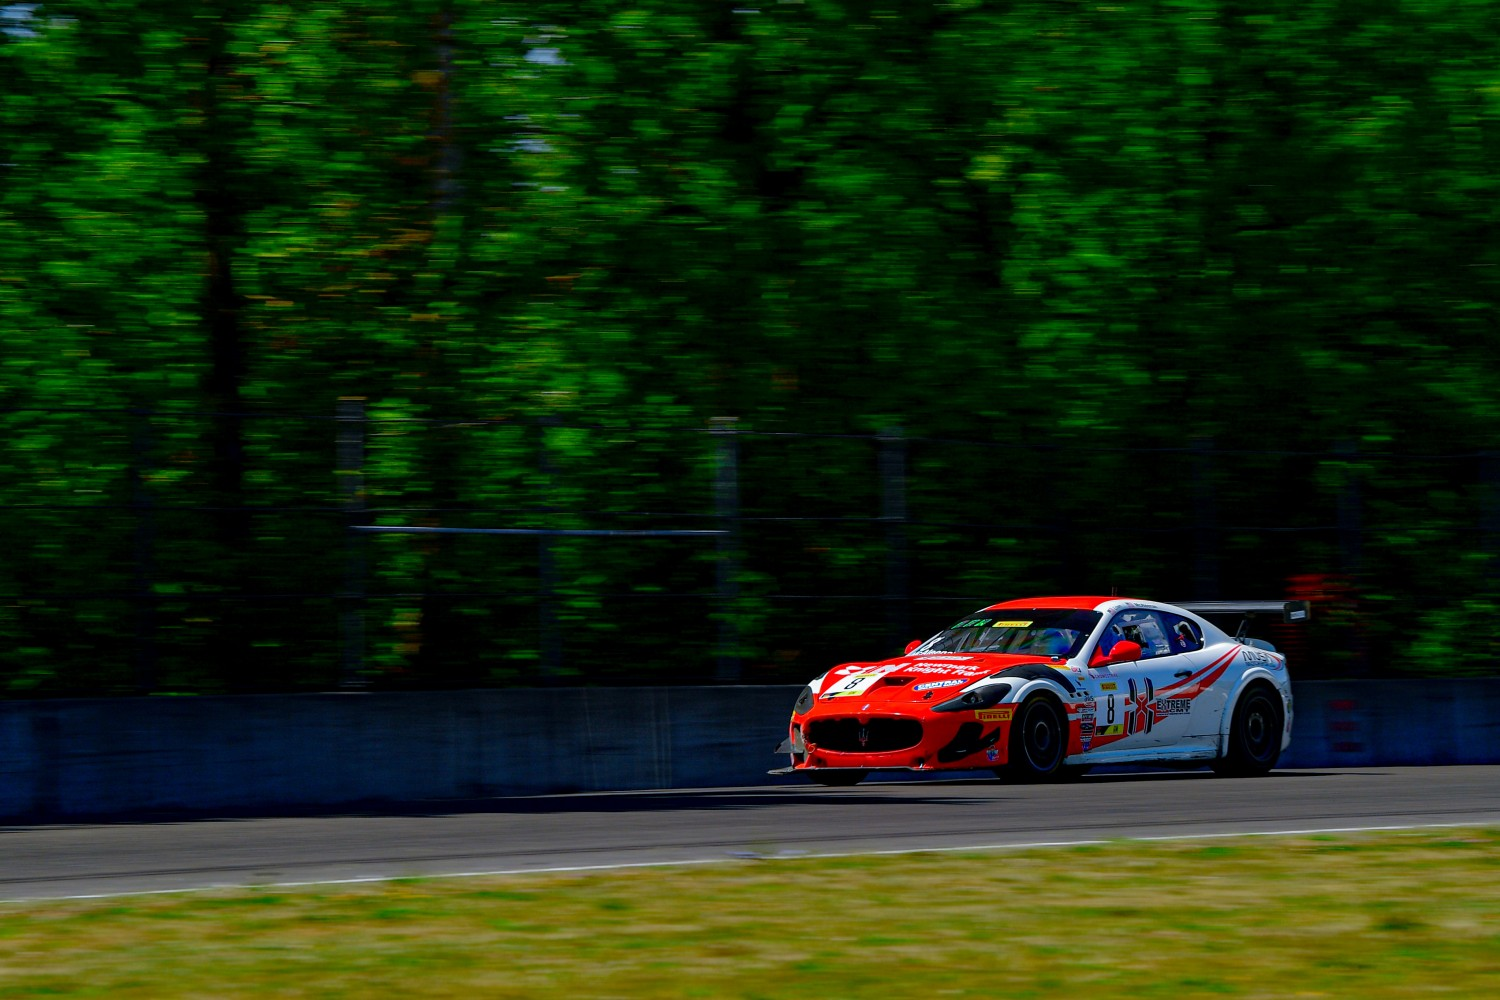 #8 Maserati Grand Turismo MC GT4 of Michael McAleenan and Jerold Lowe   Rose Cup Races, Portland OR | Gavin Baker/SRO